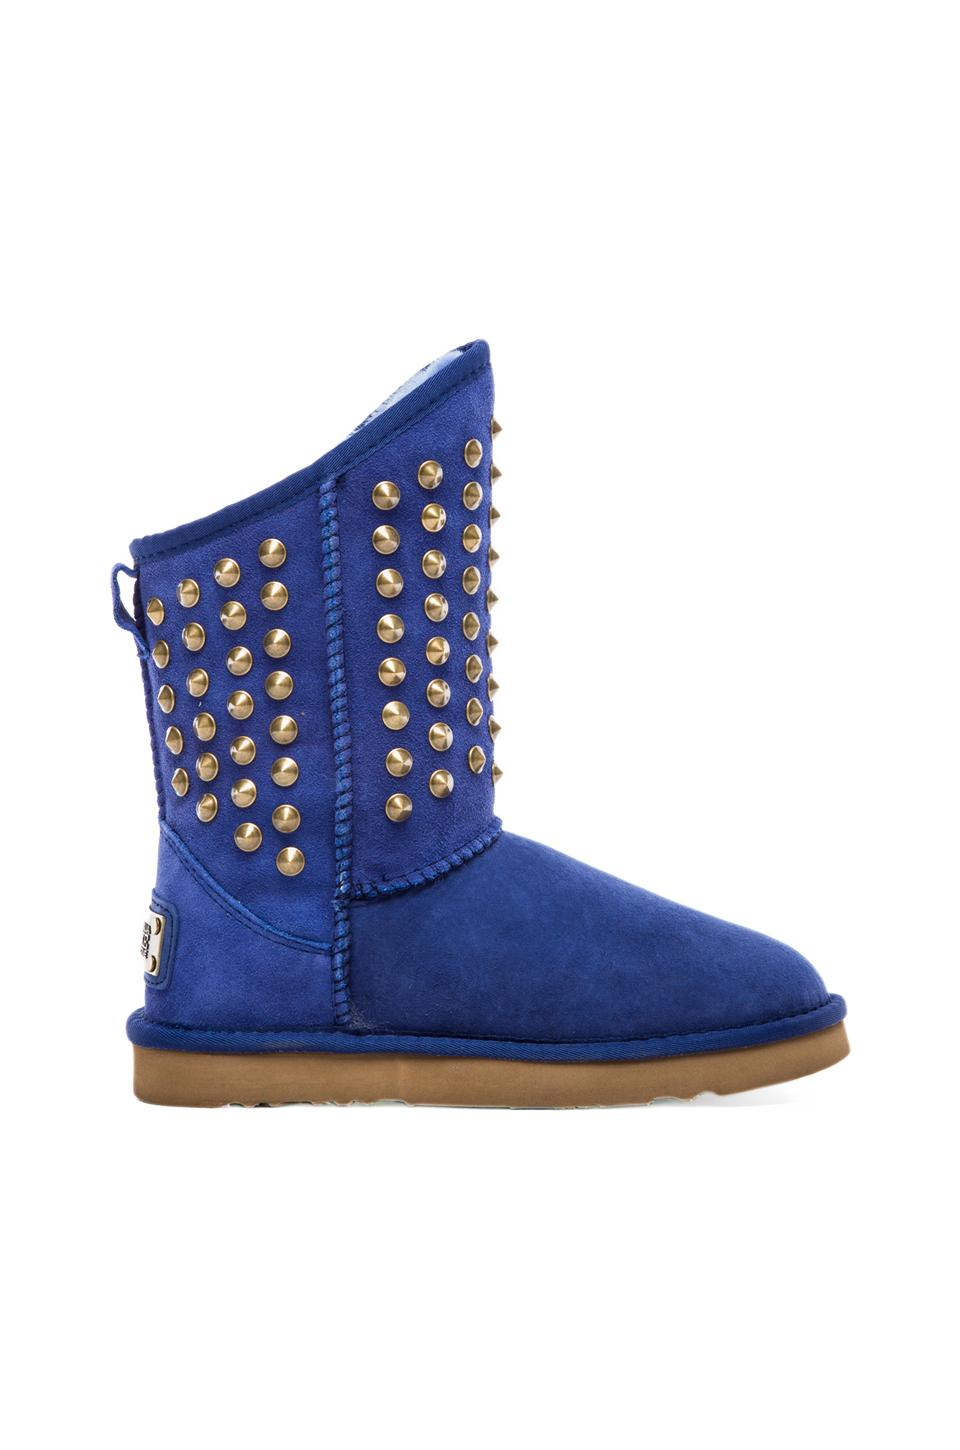 Australia Luxe Collective Pistol with Sheep Shearling in Cobalt